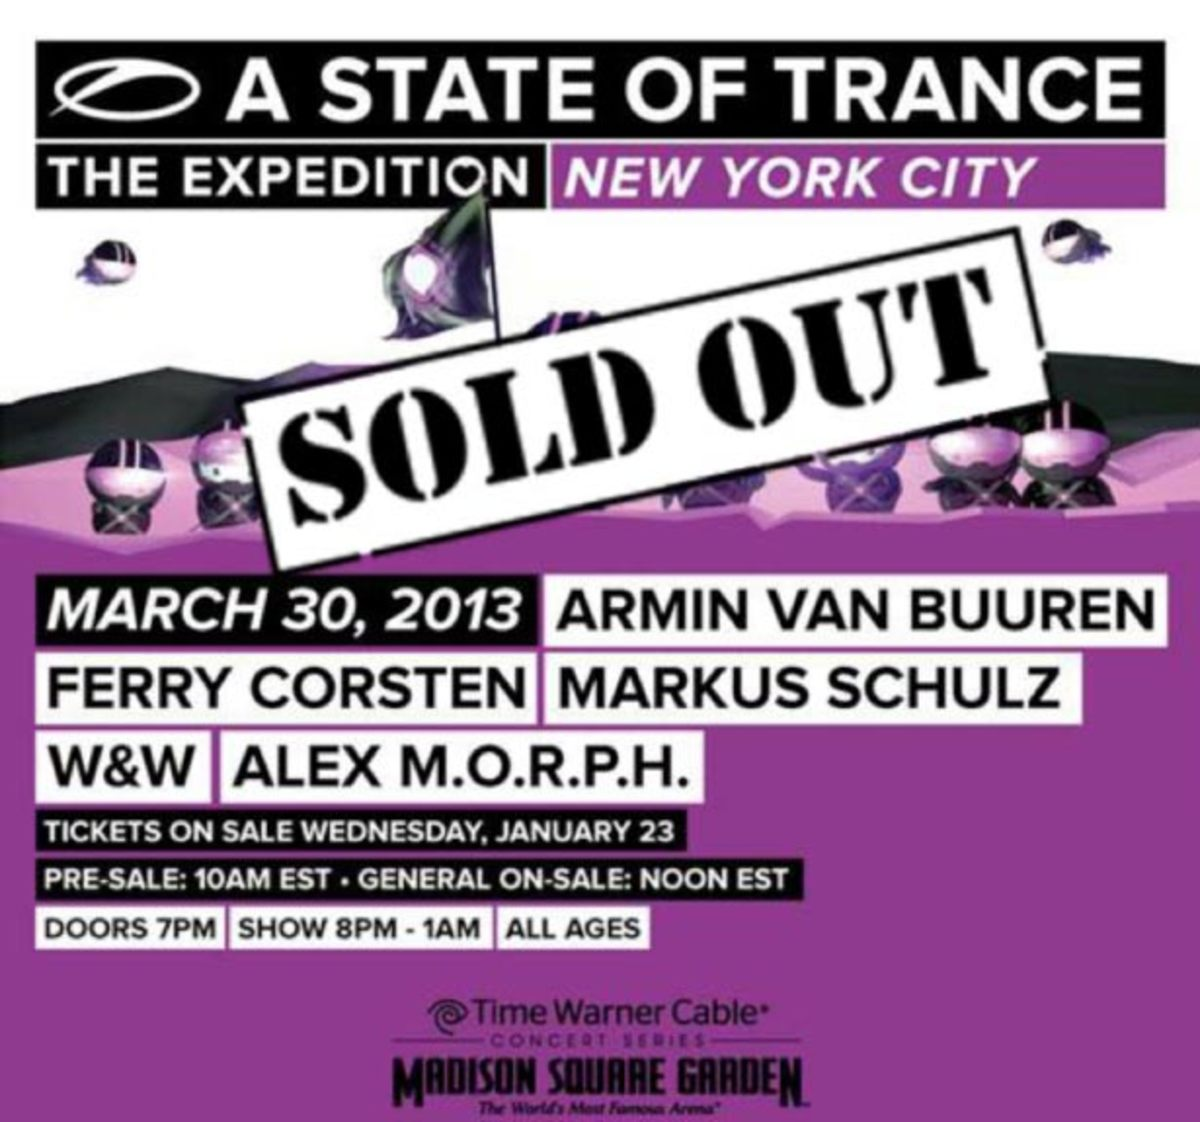 Markus Schulz x Ferry Corsten = New World Punx. A State Of Trance—New York City Style